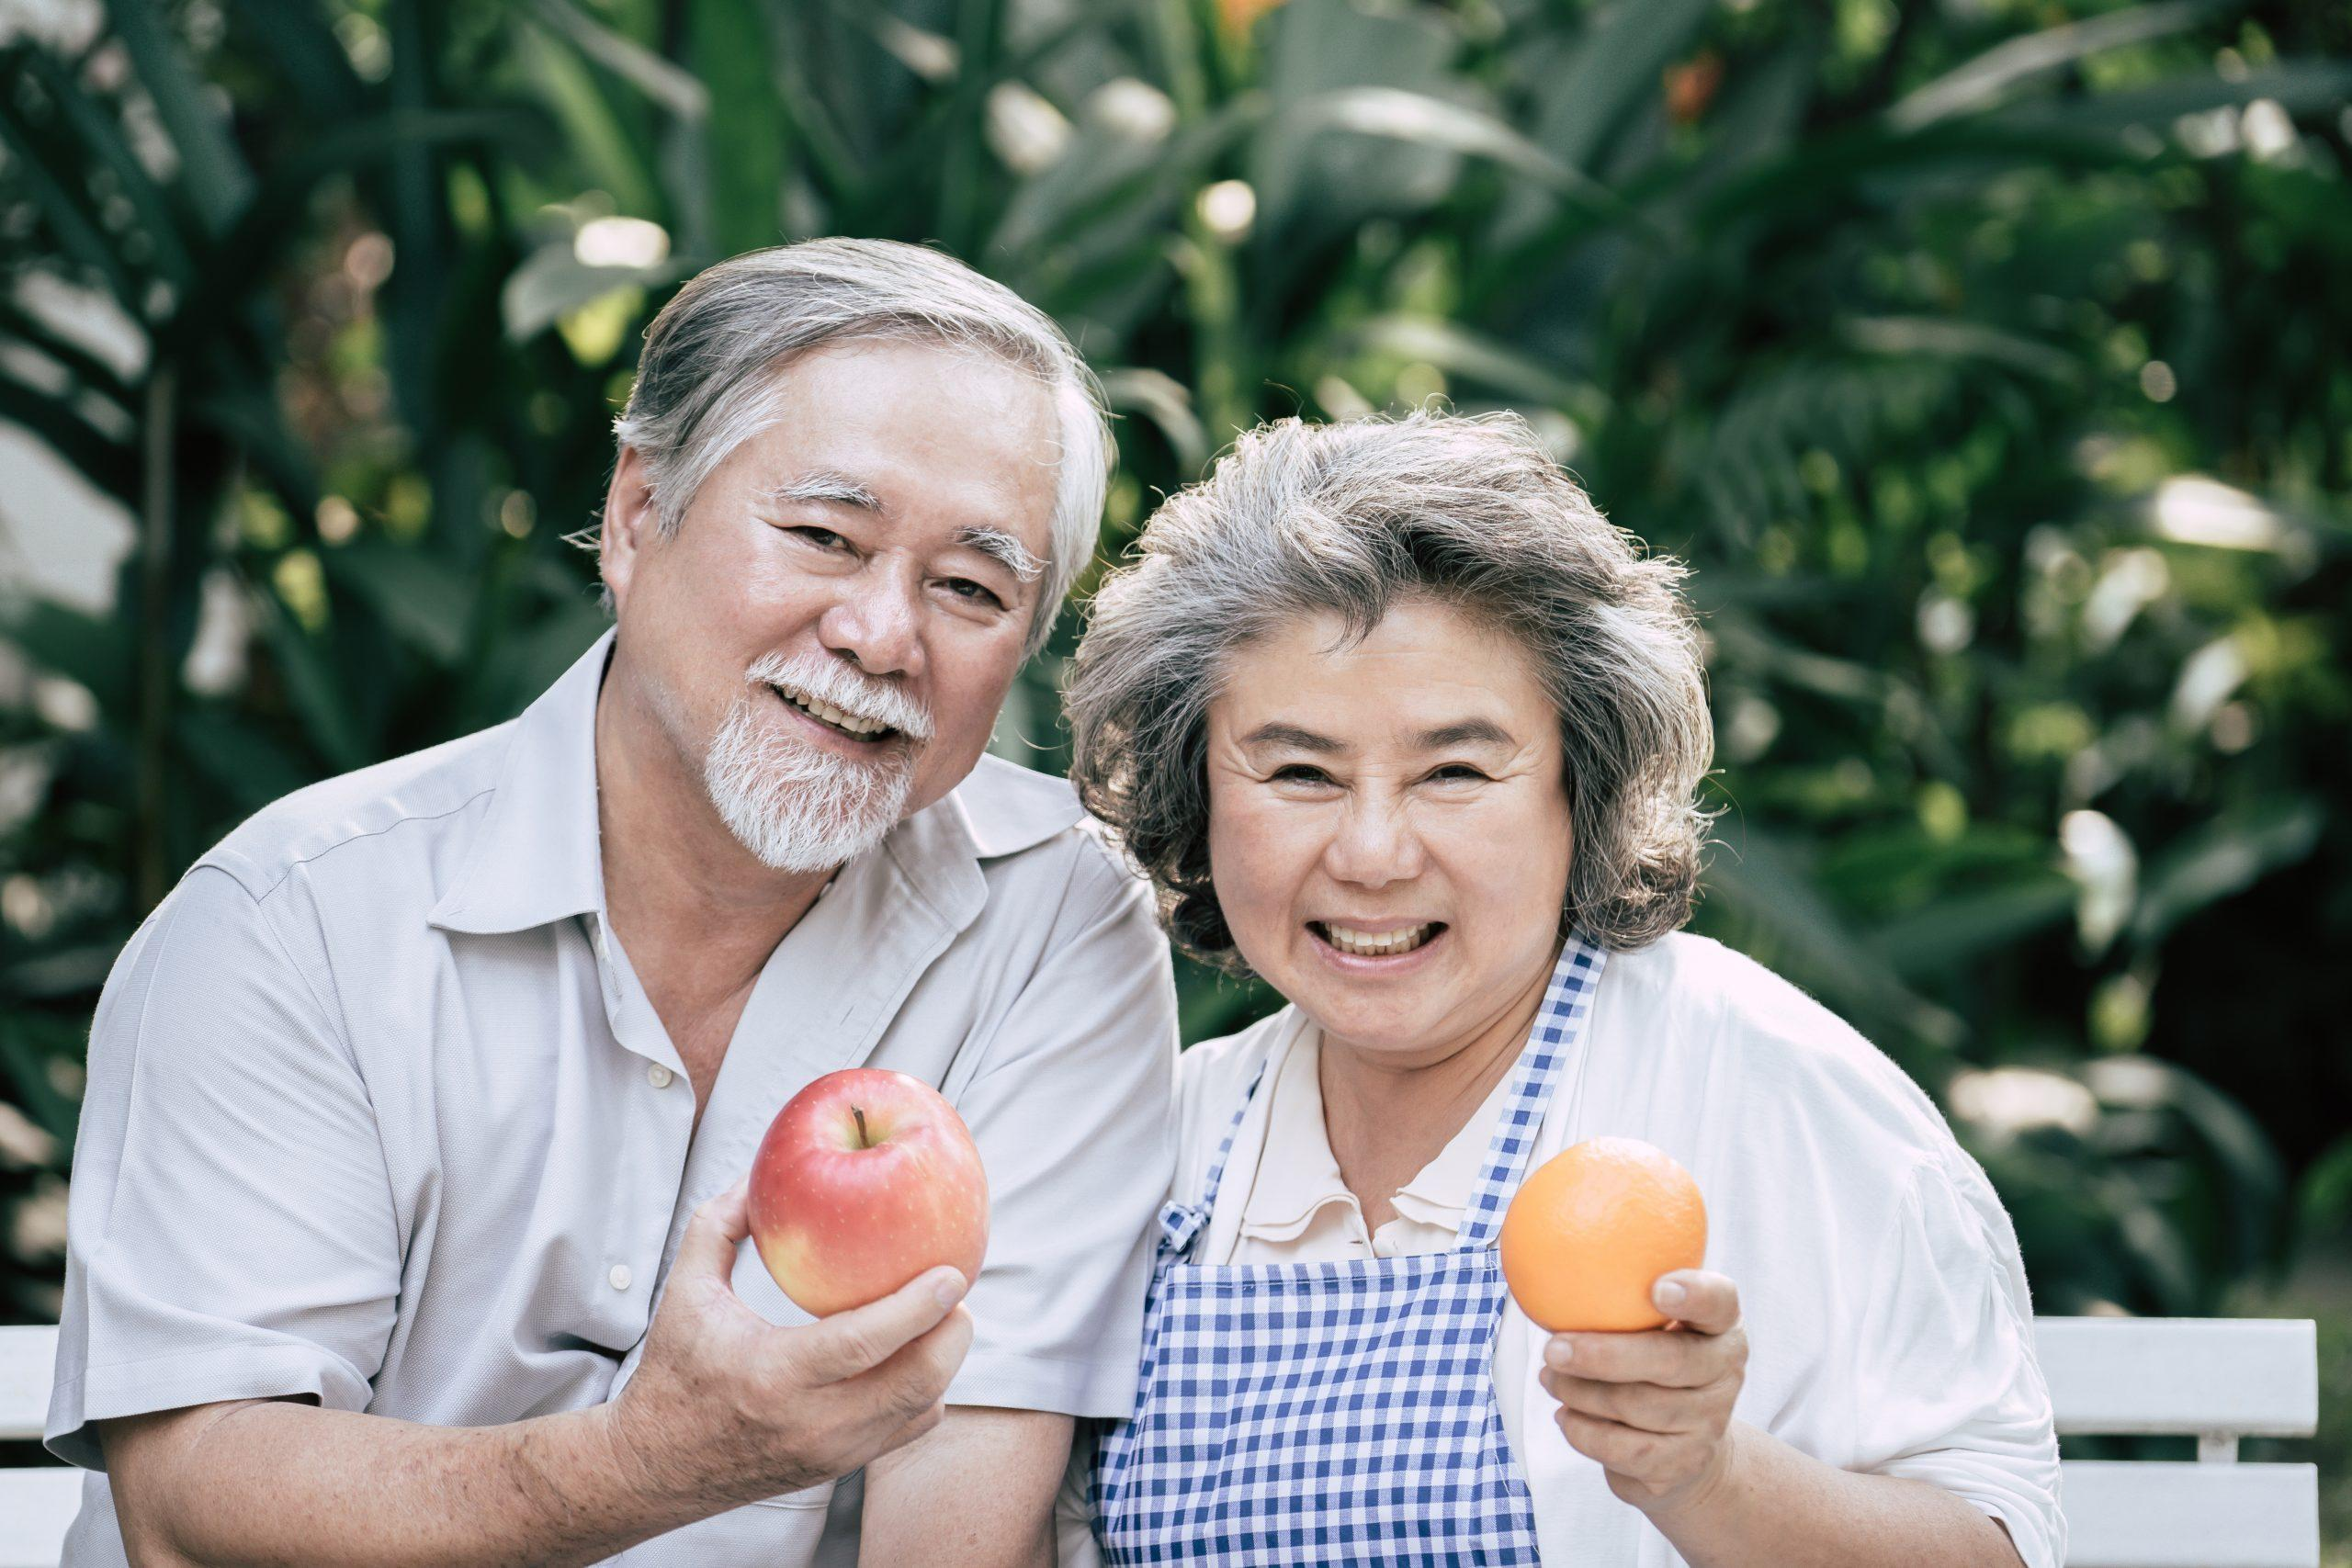 elderly-couple-celebrating-healthy-aging-month-by-choosing-nutritious-foods